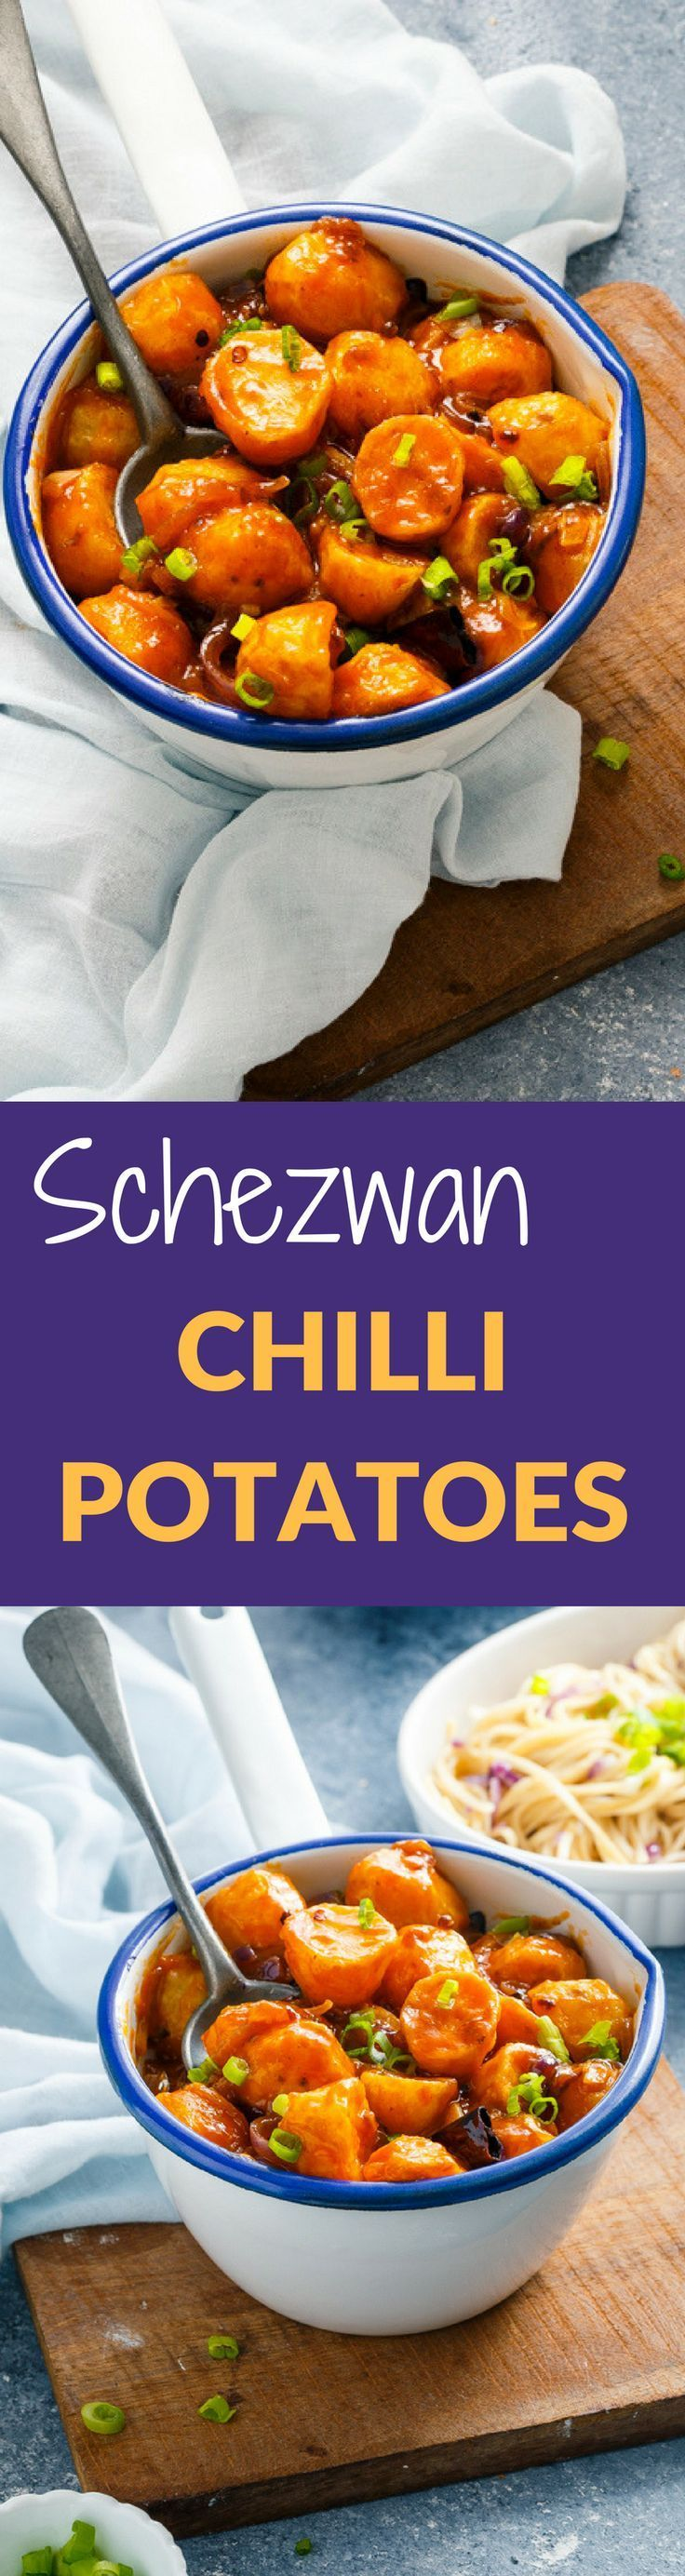 SCHEZWAN CHILLI POTATOES is a popular Indo Chinese Recipe made with